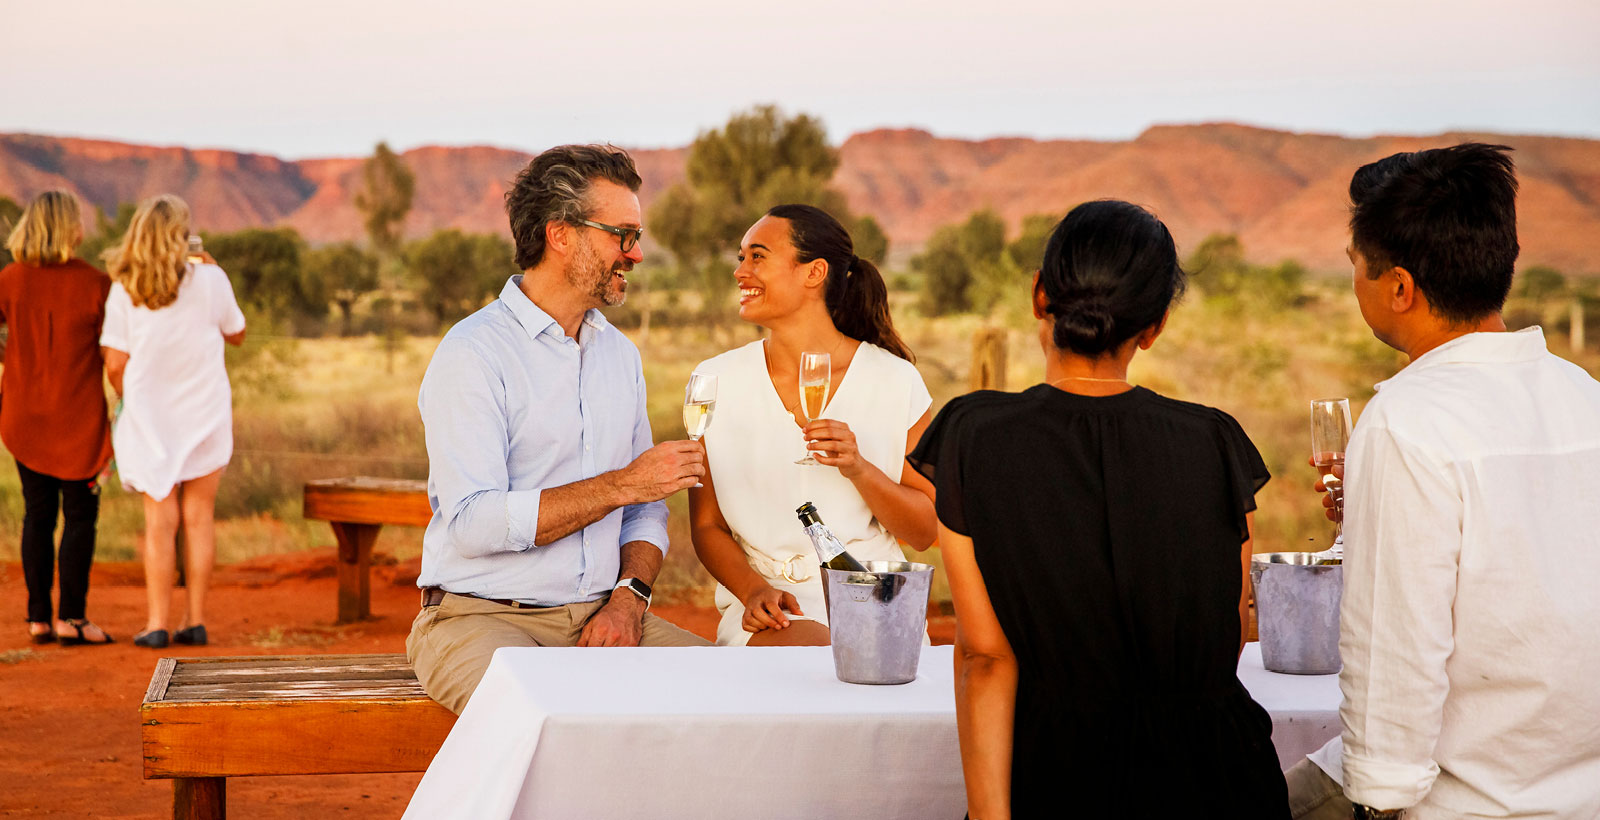 red centre couple reconnect with champagne